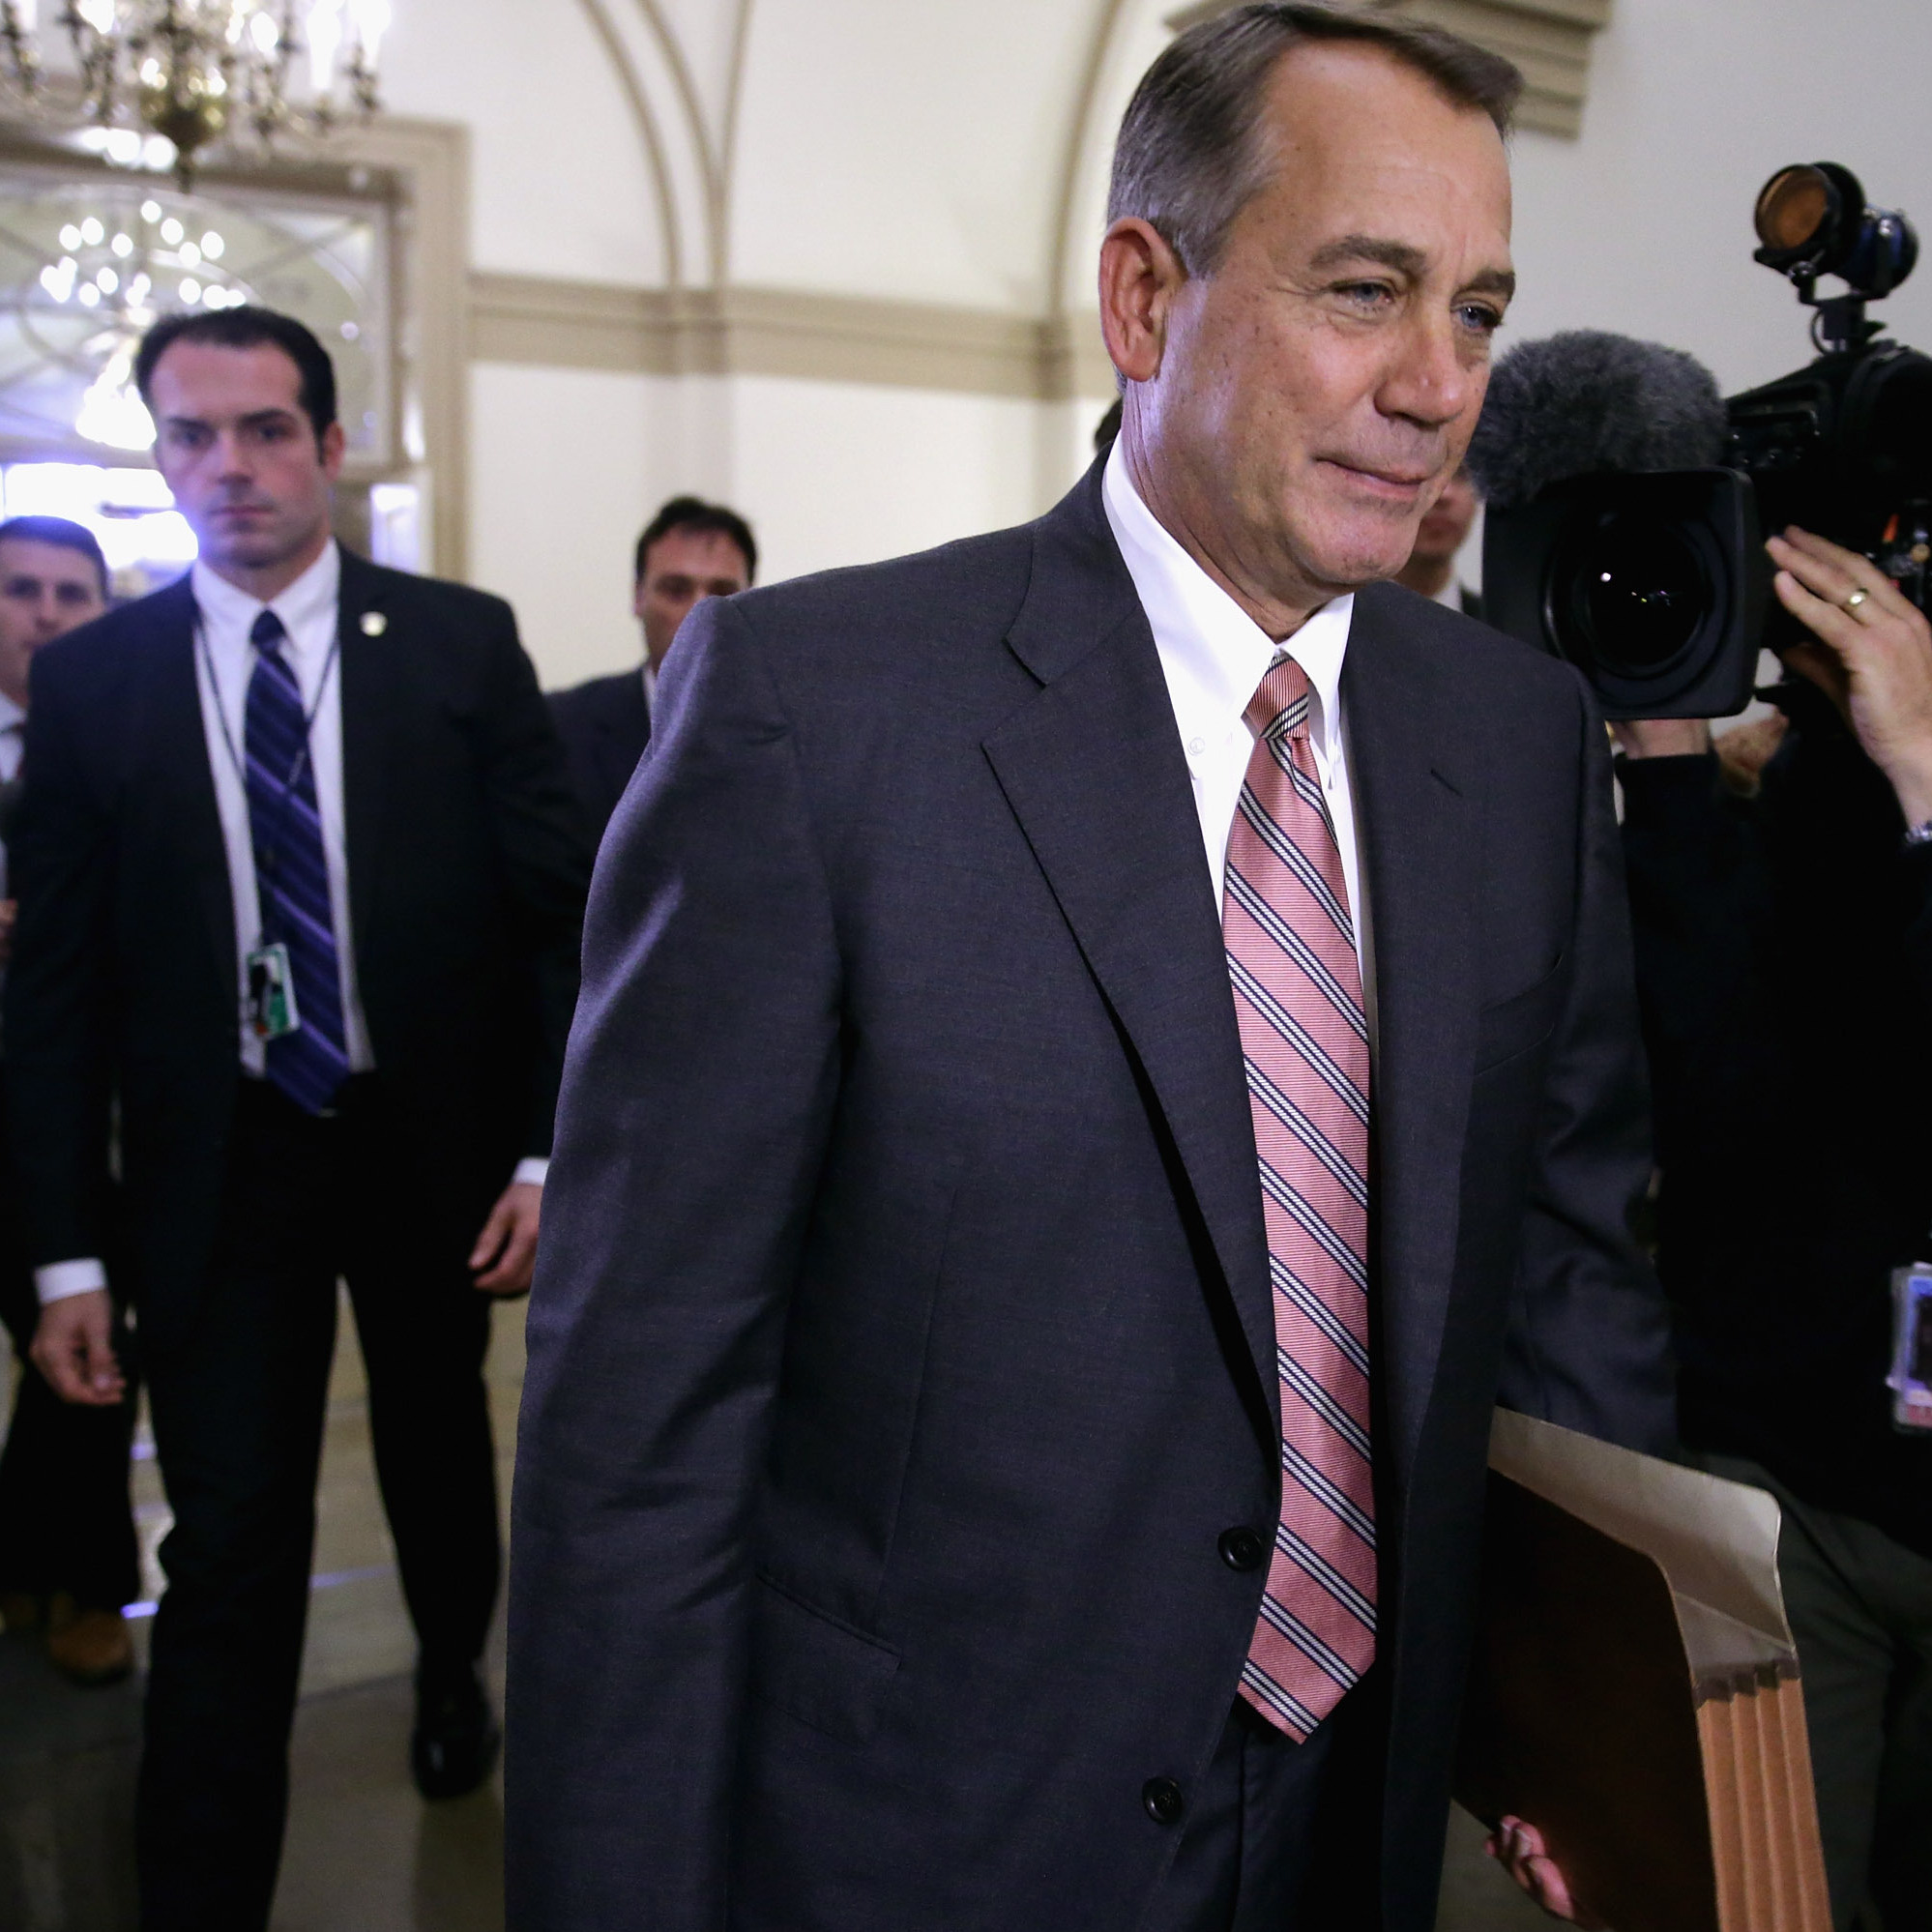 Speaker of the House John Boehner arrives at the U.S. Capitol on Monday. House Republicans remain an obstacle to any emerging deal.